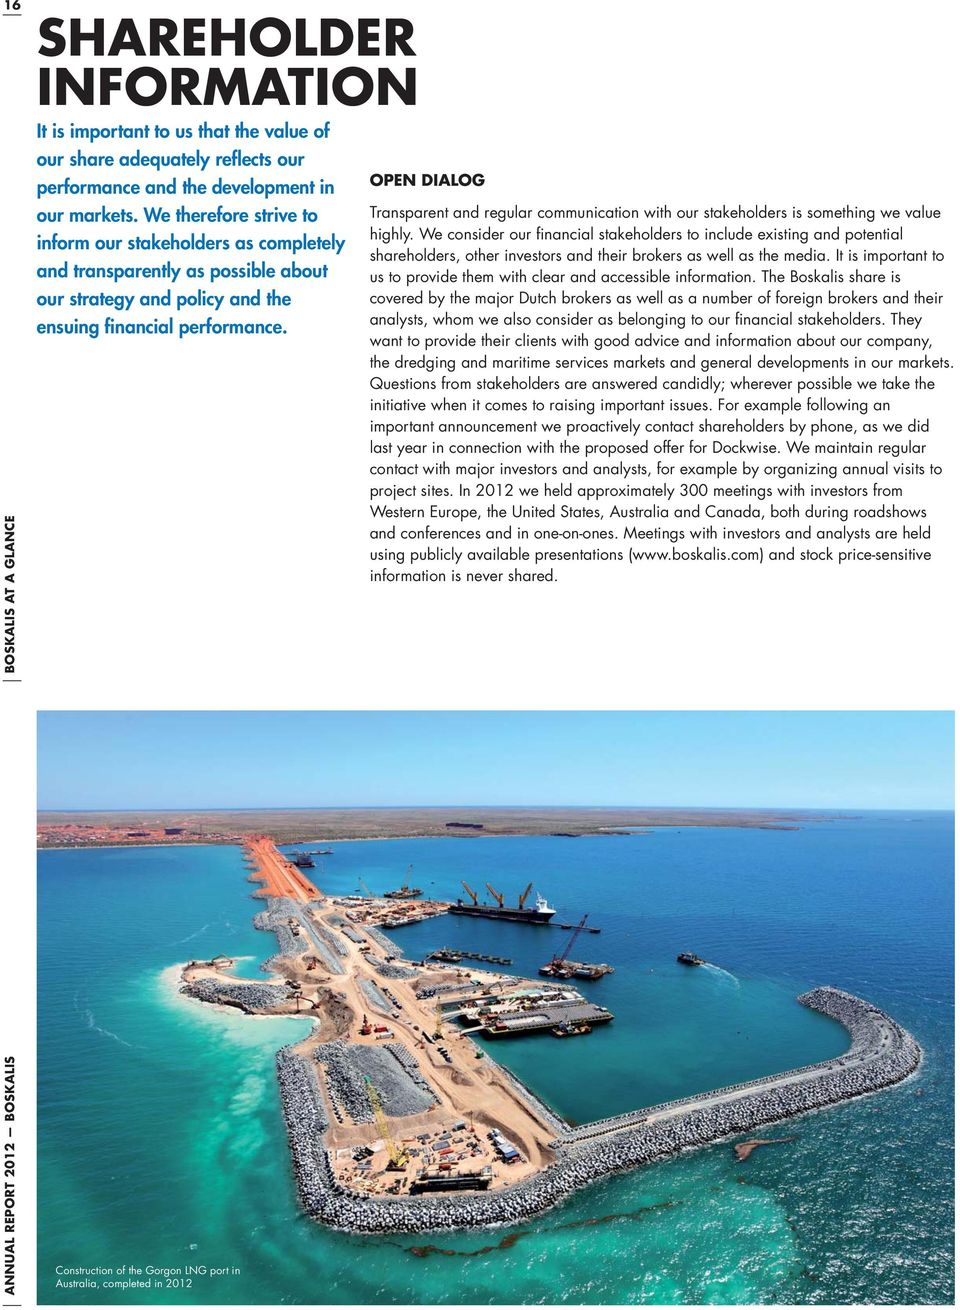 Construction of the Gorgon LNG port in Australia, completed in 2012 OPEN DIALOG Transparent and regular communication with our stakeholders is something we value highly.